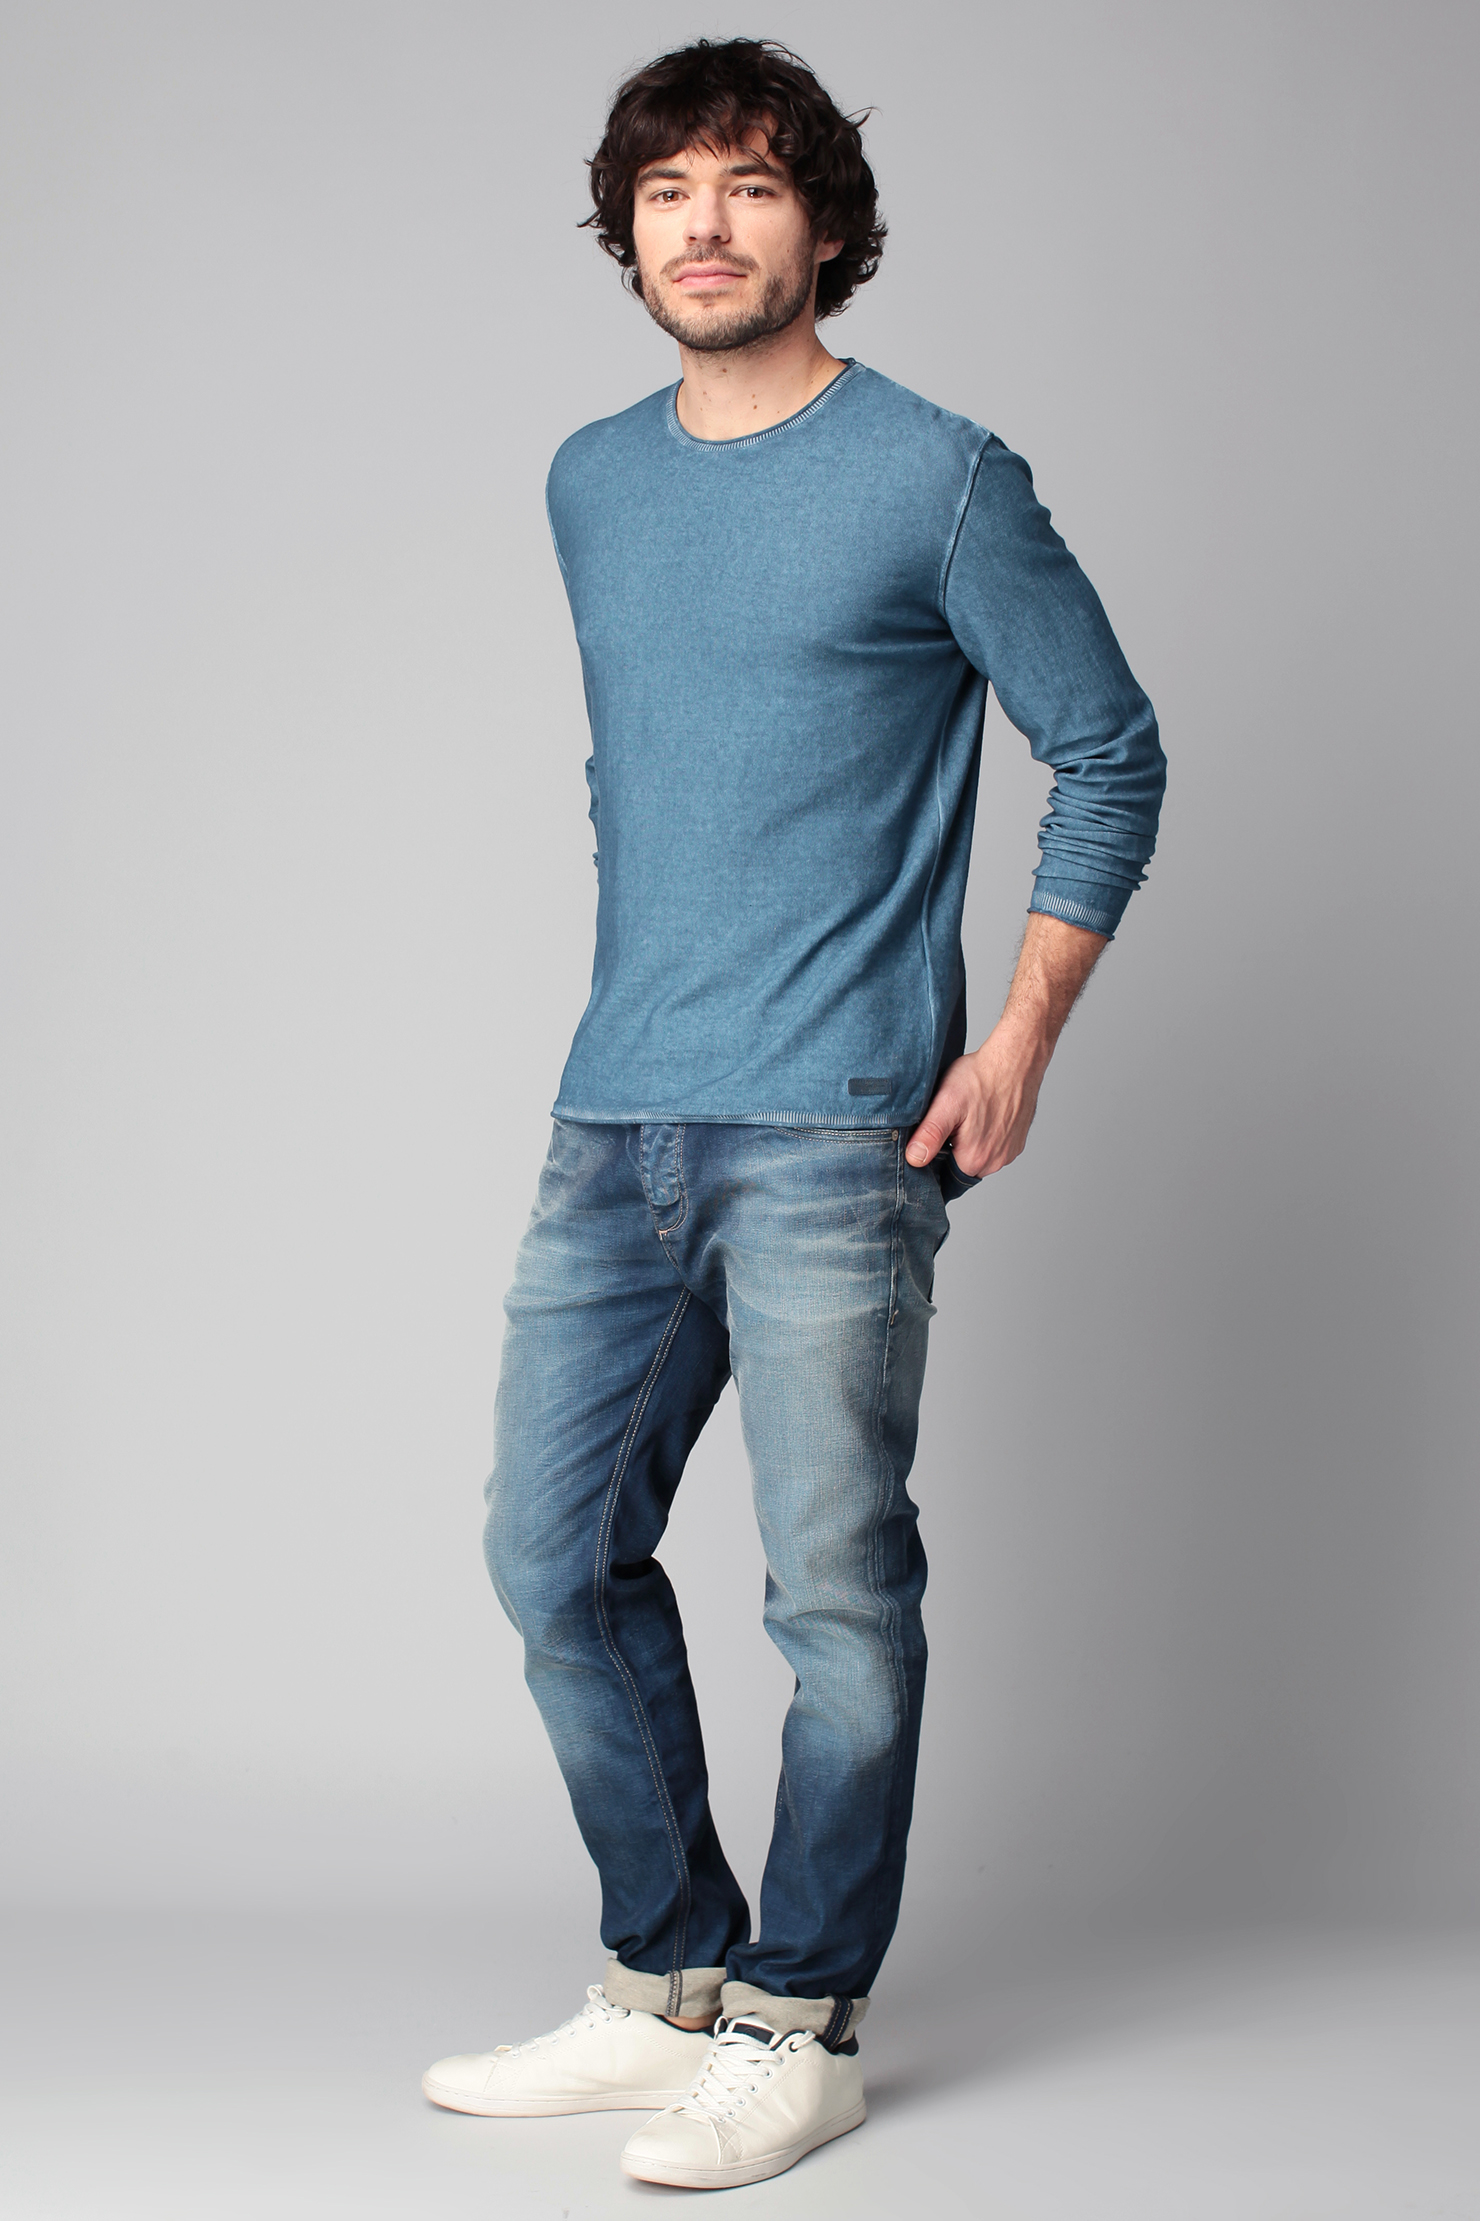 Lyst pepe jeans jumper in blue for men - Pepe jeans showroom ...